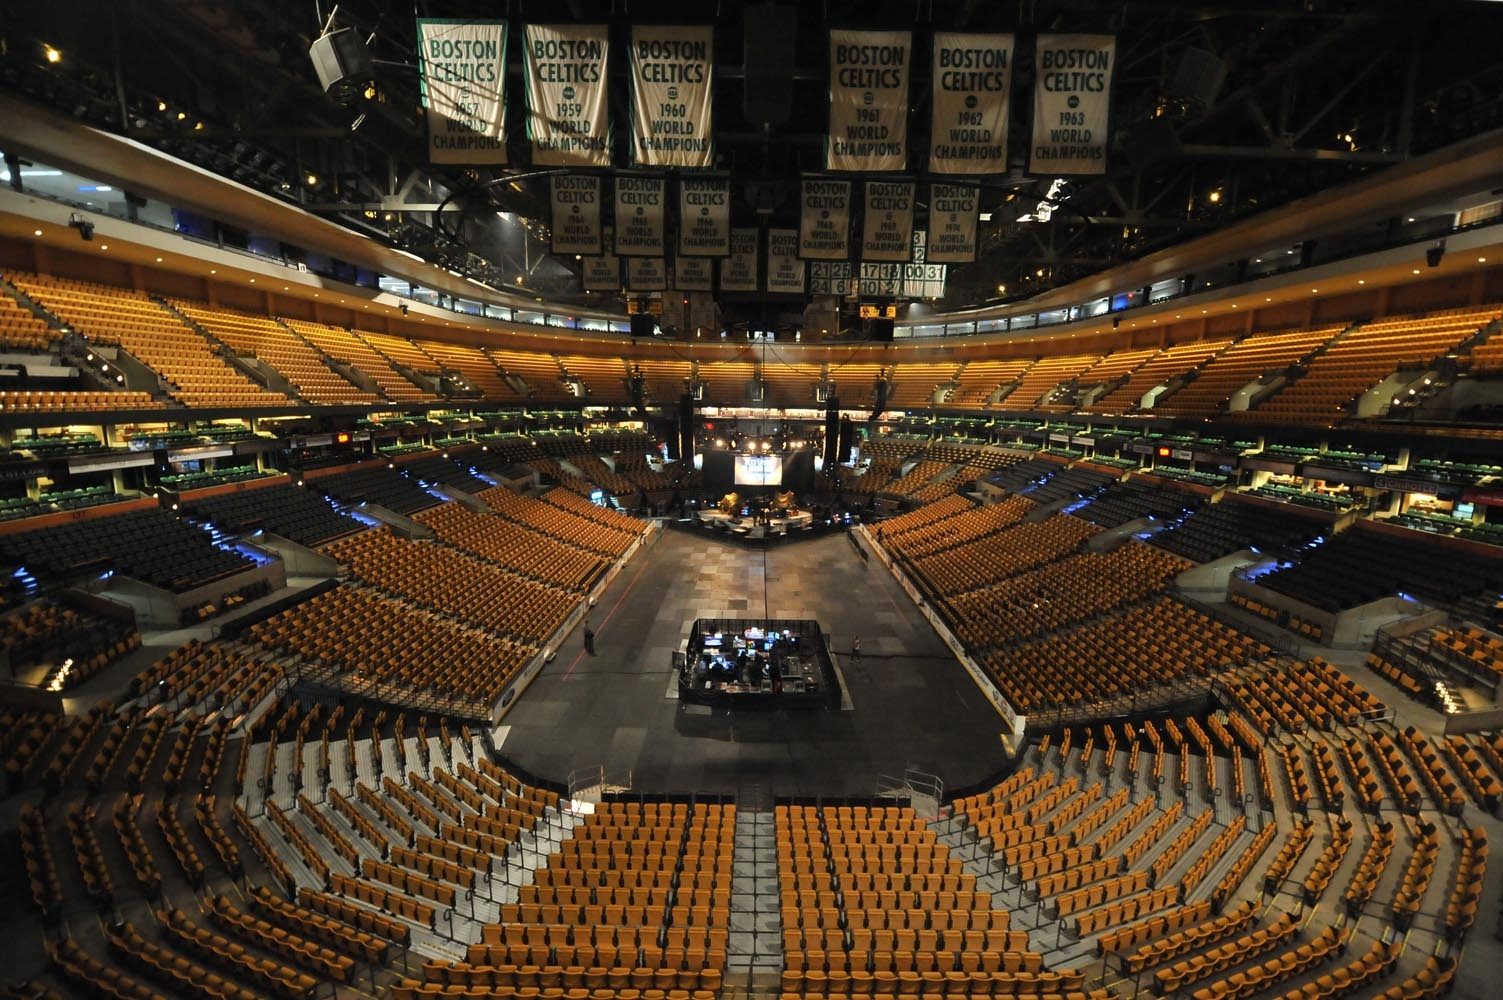 Td Garden Tickets likewise Td Garden Virtual Seating likewise 303 also Stock Photo Captain Morgan Life Love Loot Image21613530 besides How To Be Devils Fan In Boston 2015 16. on boston bruins td garden seats